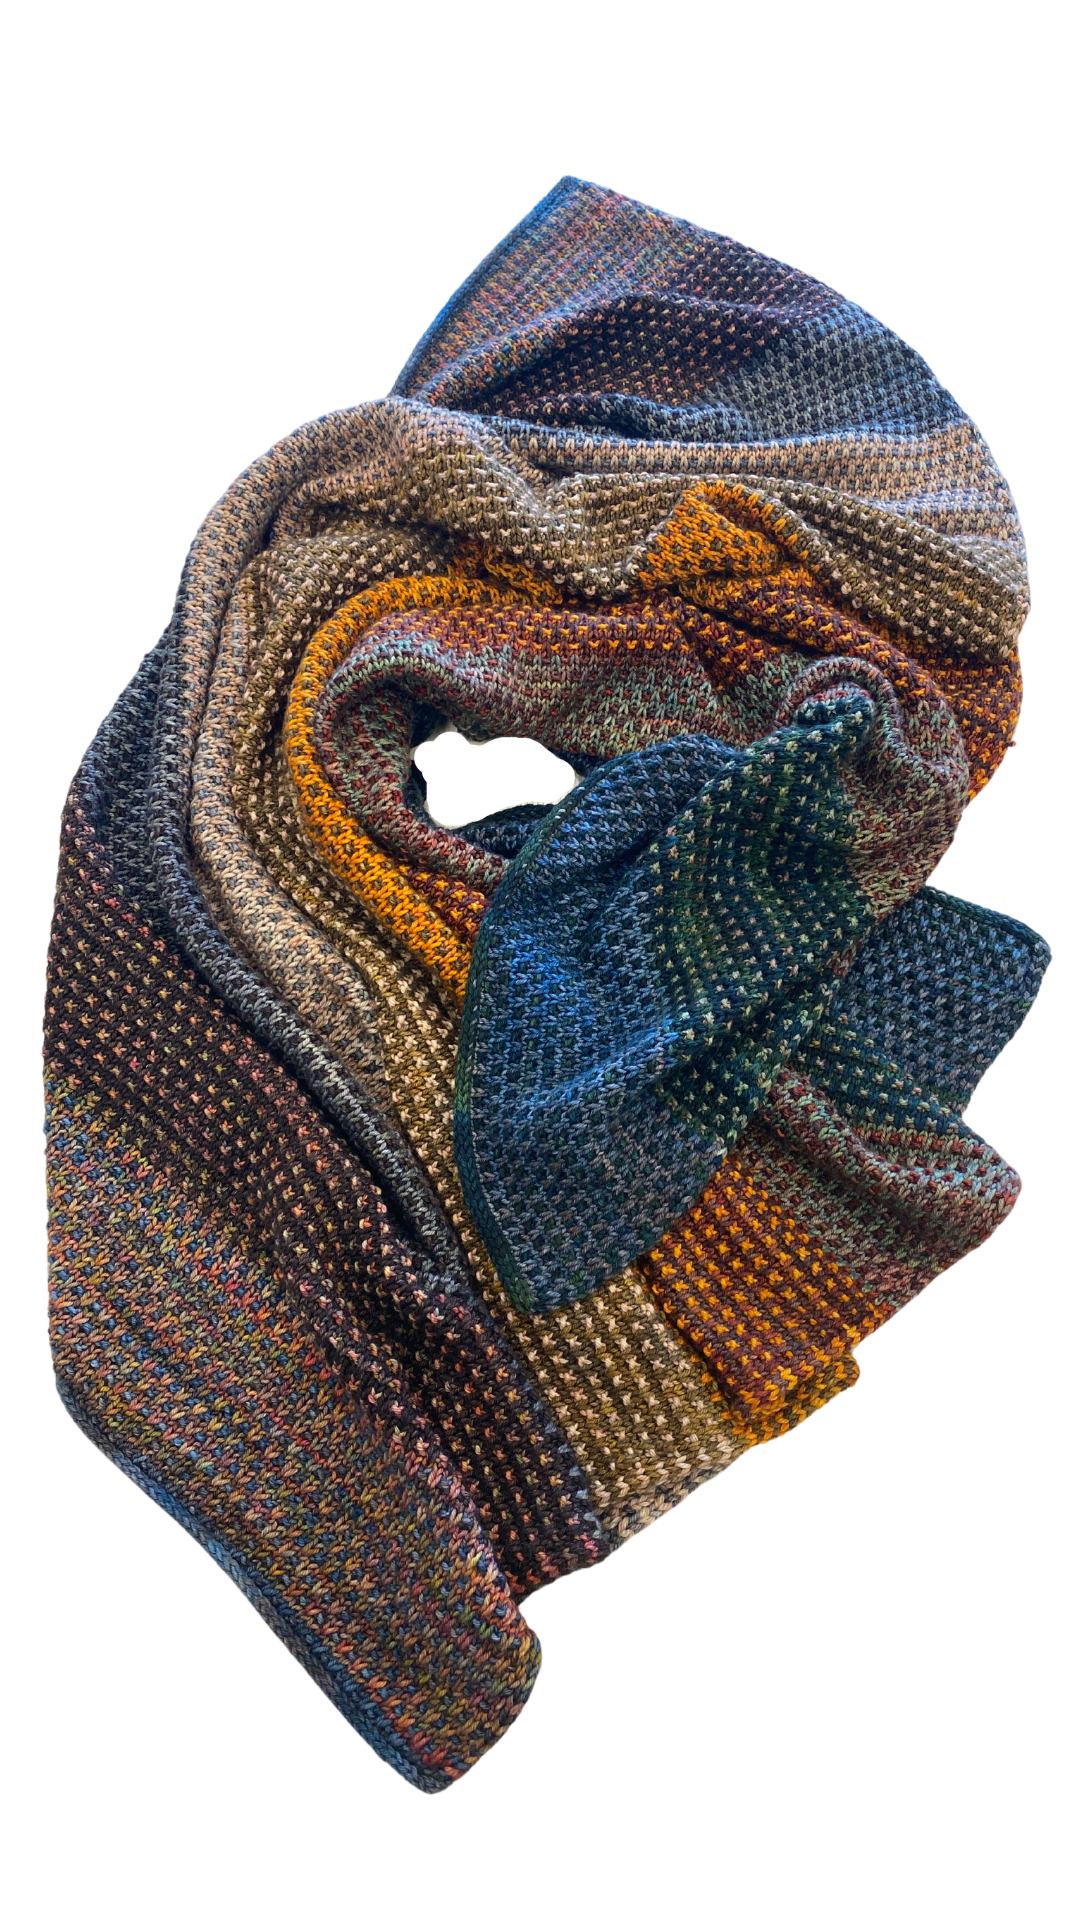 Malabrigo Slip Stitch Blanket Kit